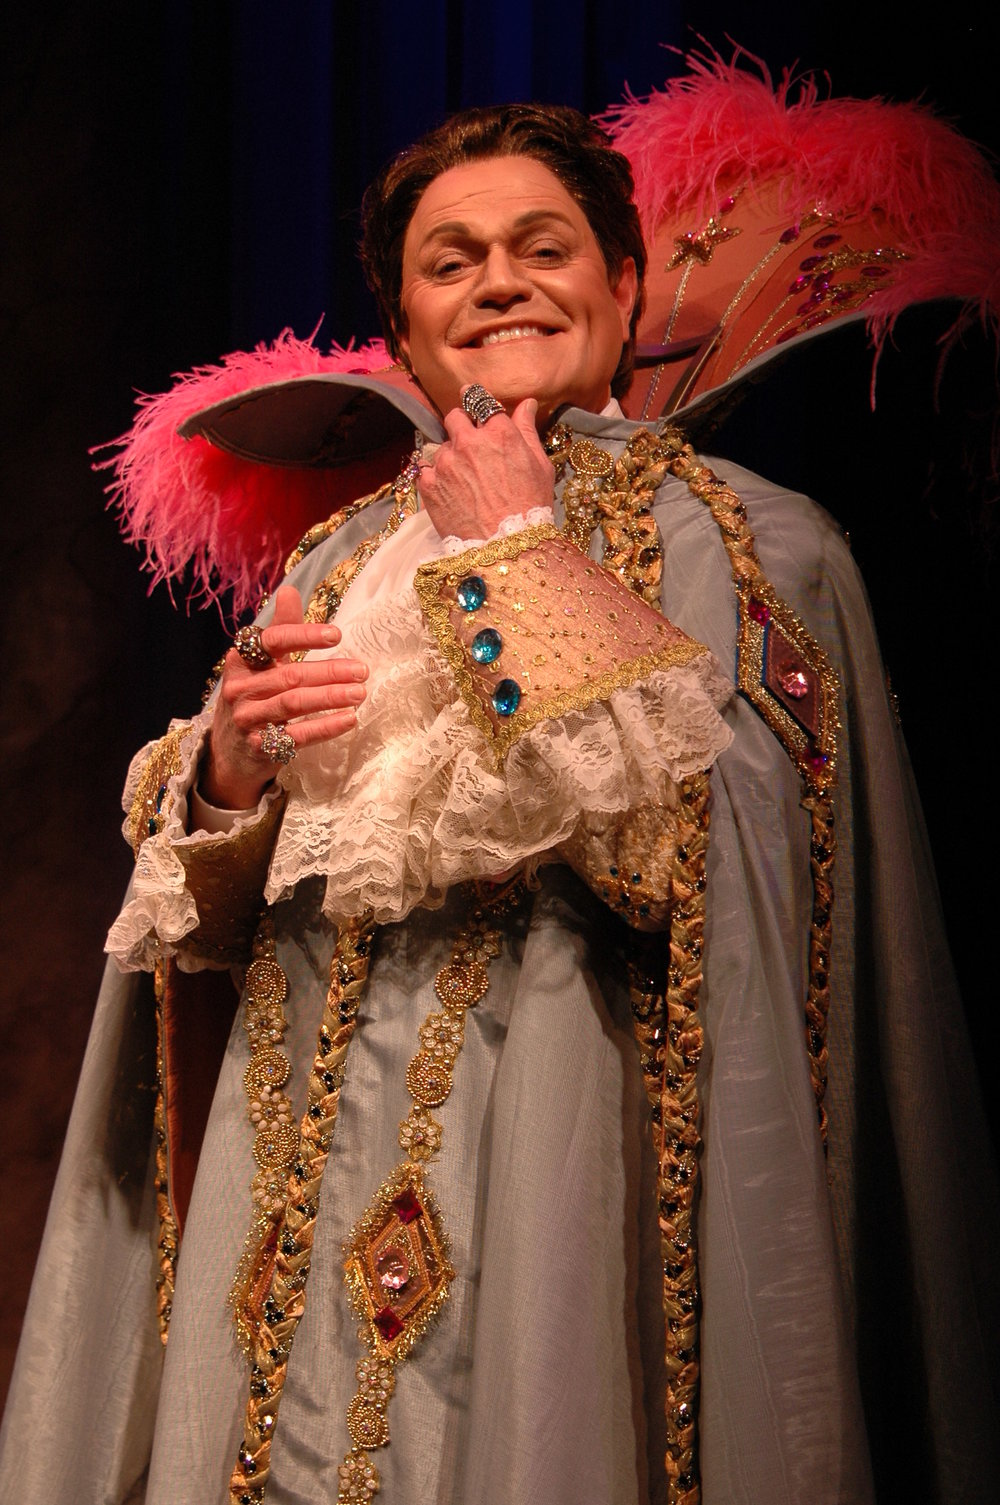 Photo by Skip Hooper. Caption: Gary Beard performs Liberace! in the Next Stage at Theatre Memphis, September 30 - October 16, 2016.